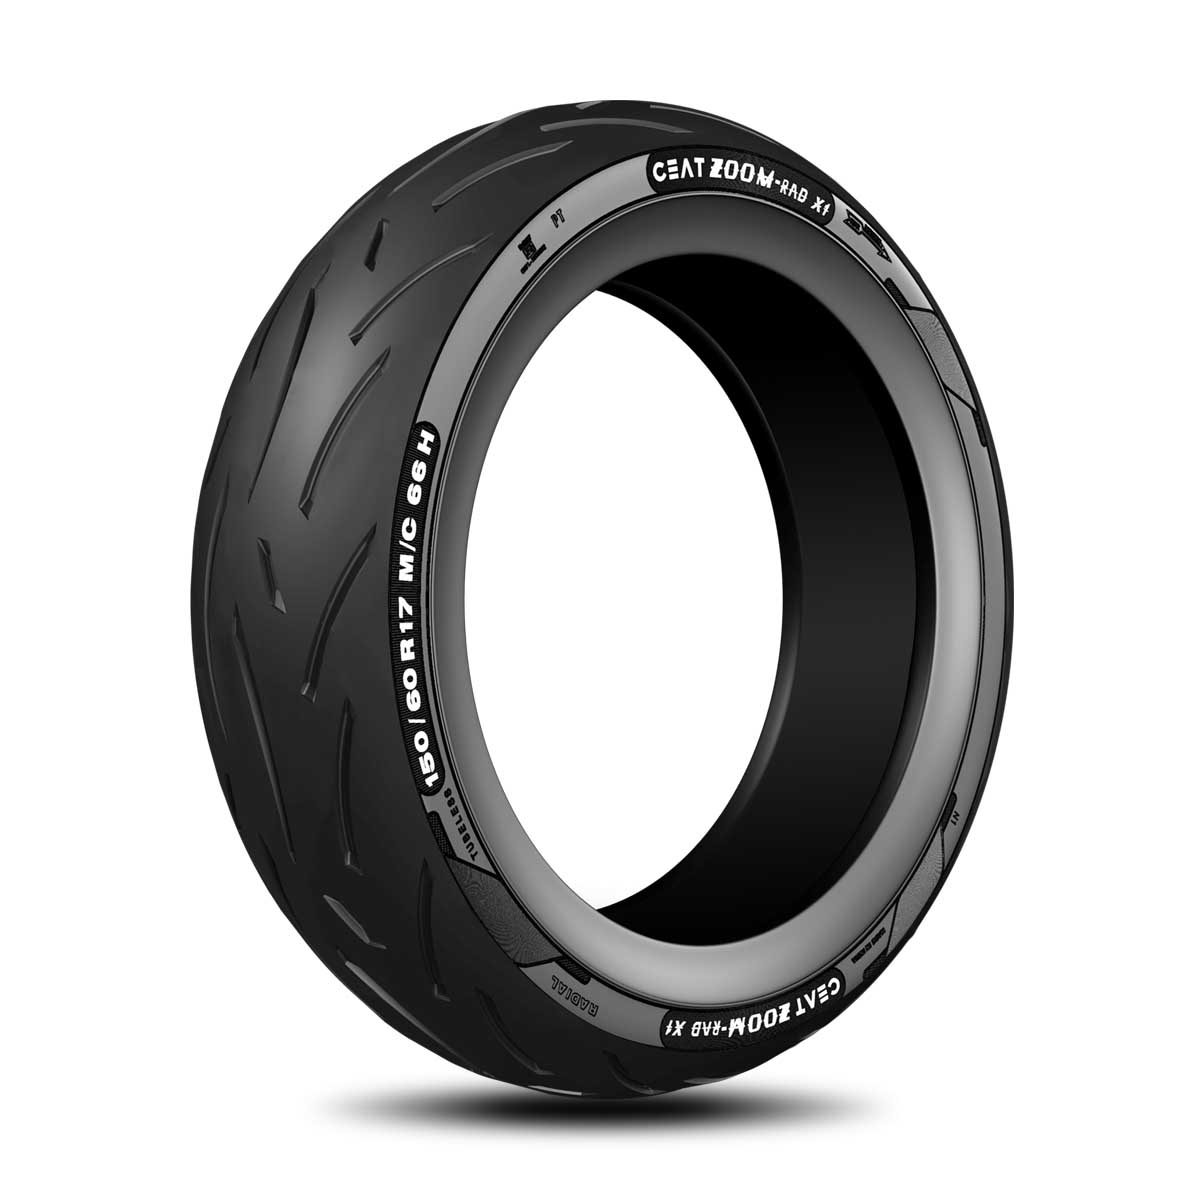 Ceat Rad X1 150/60 R 17 Tubeless 66 H Rear Two-Wheeler Tyre